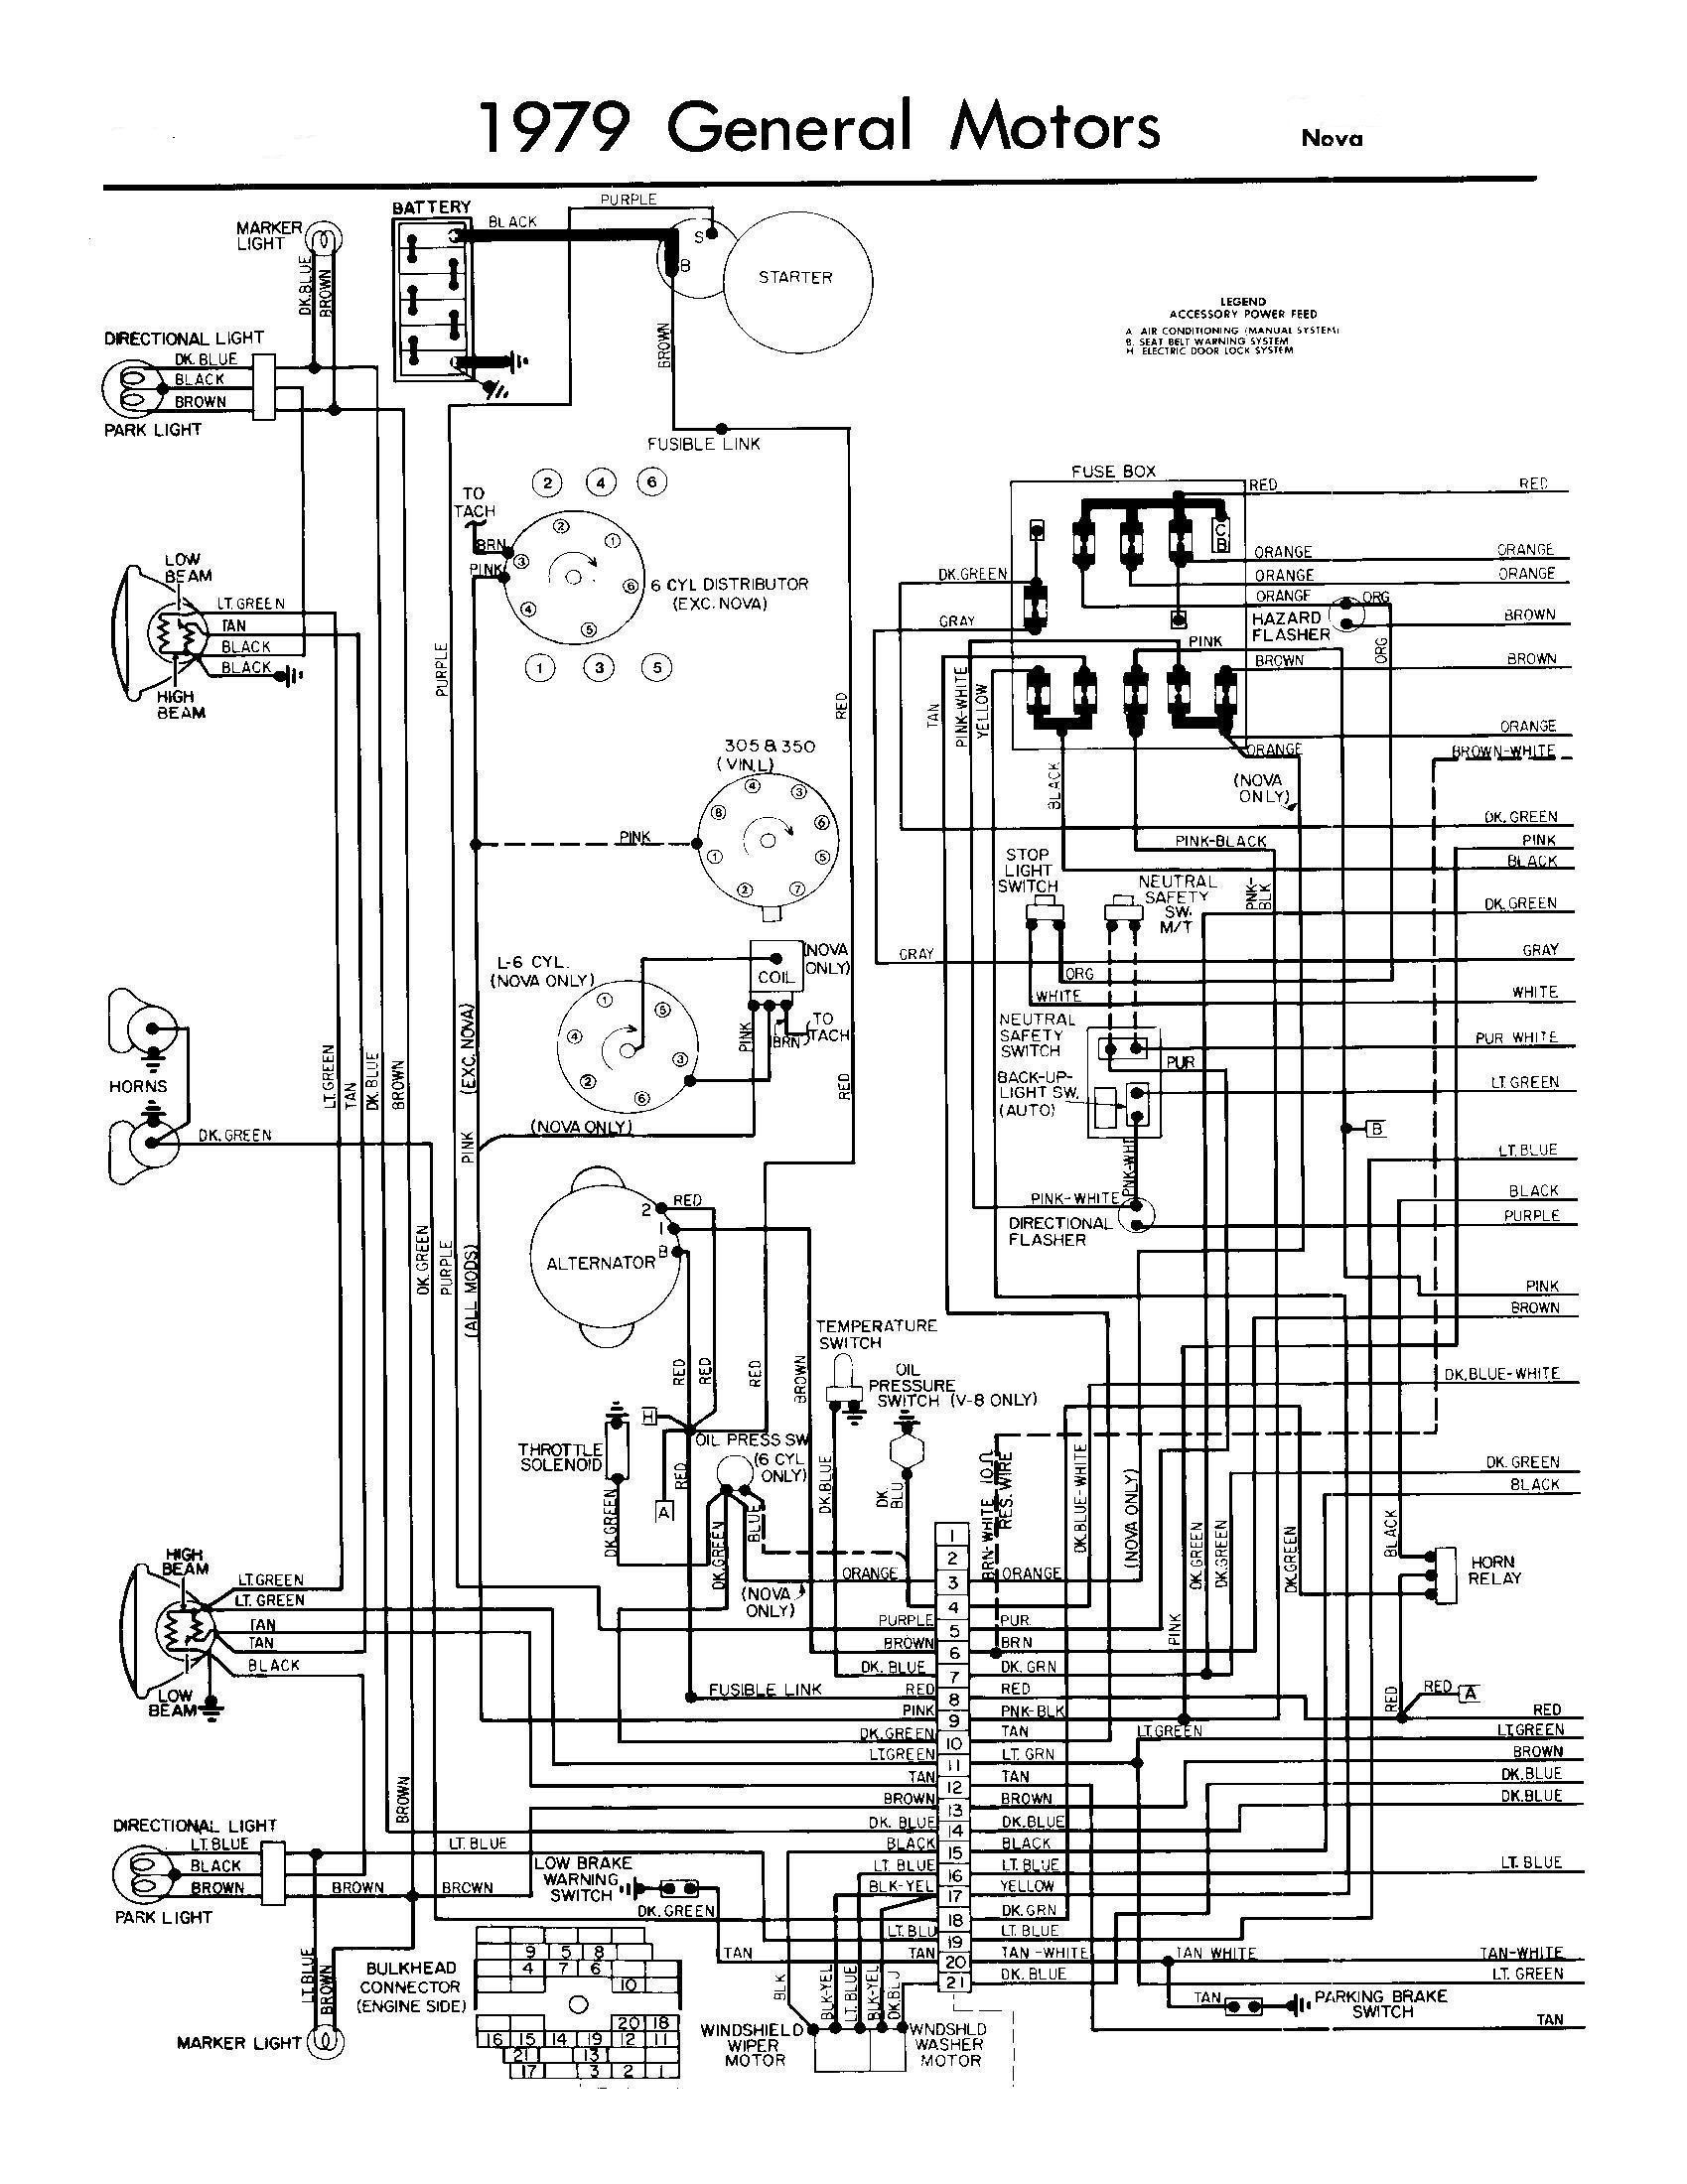 Auto Diagram 1970 Plymouth Wiring 1960 Chevy Truck - Search Wiring on understanding electrical line diagrams, lead-lag pump schematics, electronics schematics, understanding basic electrical wiring, network analysis, understanding pneumatic schematics, understanding electrical equipment, understanding electrical drawings, hvac diagrams schematics, understanding electrical components, one-line diagram, at-at schematics, understanding electrical wiring diagrams, wiring diagram, understanding mechanical drawings, integrated circuit layout, understanding ladder diagrams, mechanical schematics, understanding electrical prints, understanding electrical symbols, block diagram, digital electronics, understanding schematic diagrams, circuit design, function block diagram, understanding hydraulic schematics, understanding p&id drawings, understanding circuit schematics,